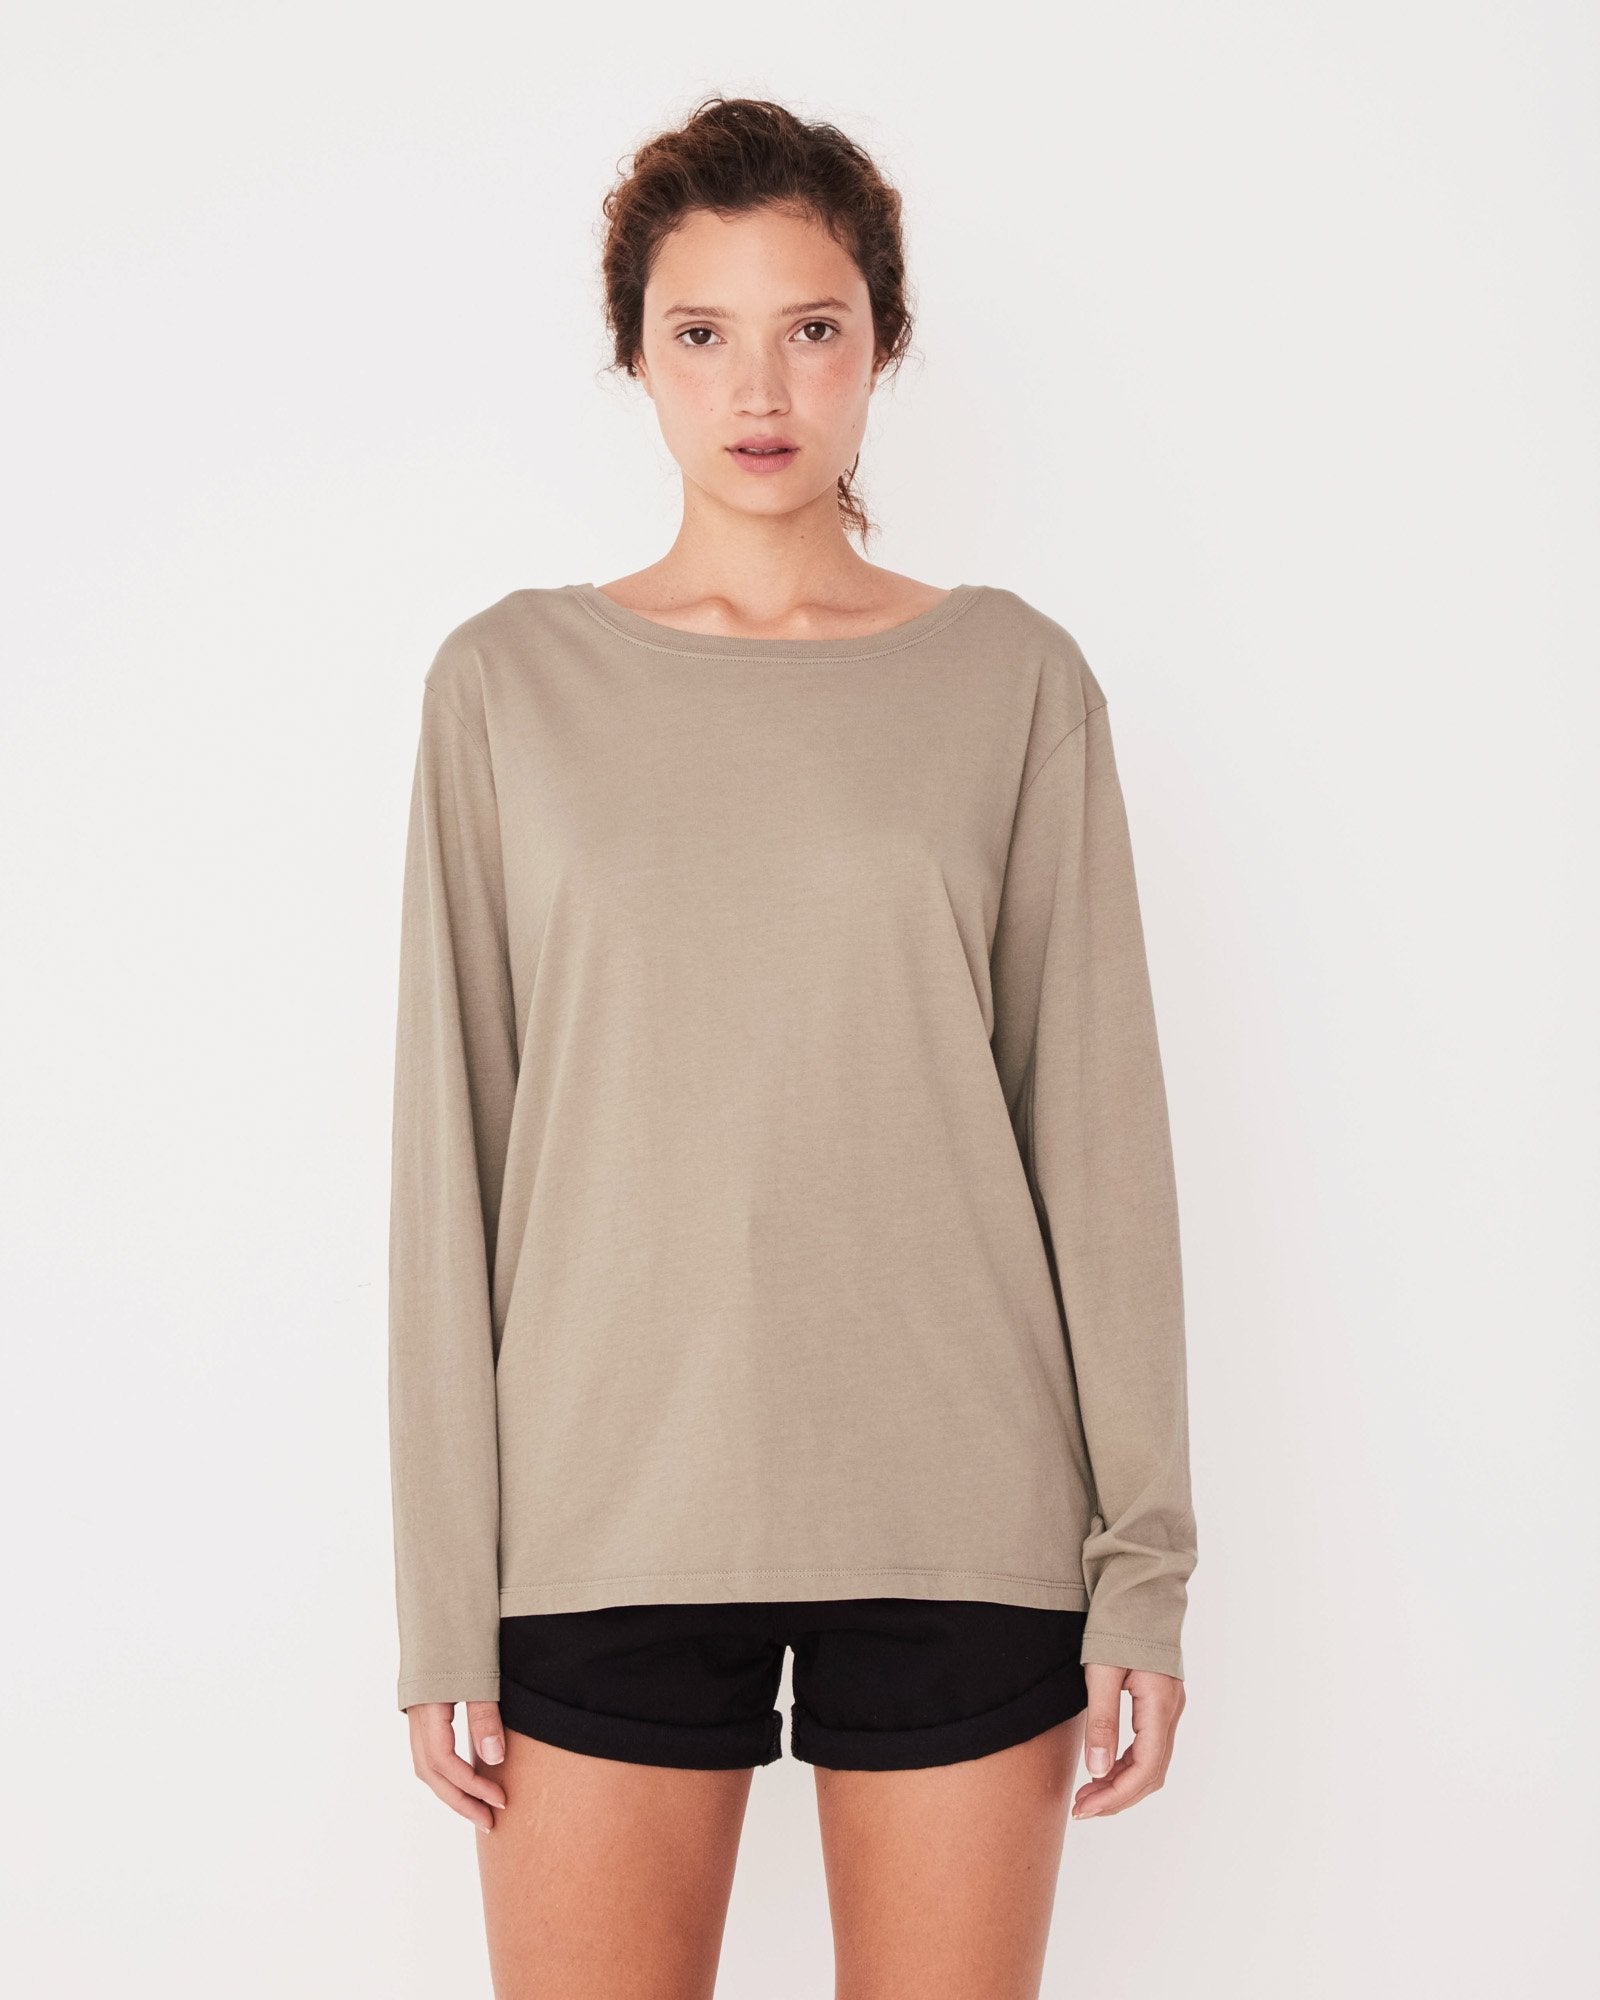 Bay Long Sleeve - Seagrass